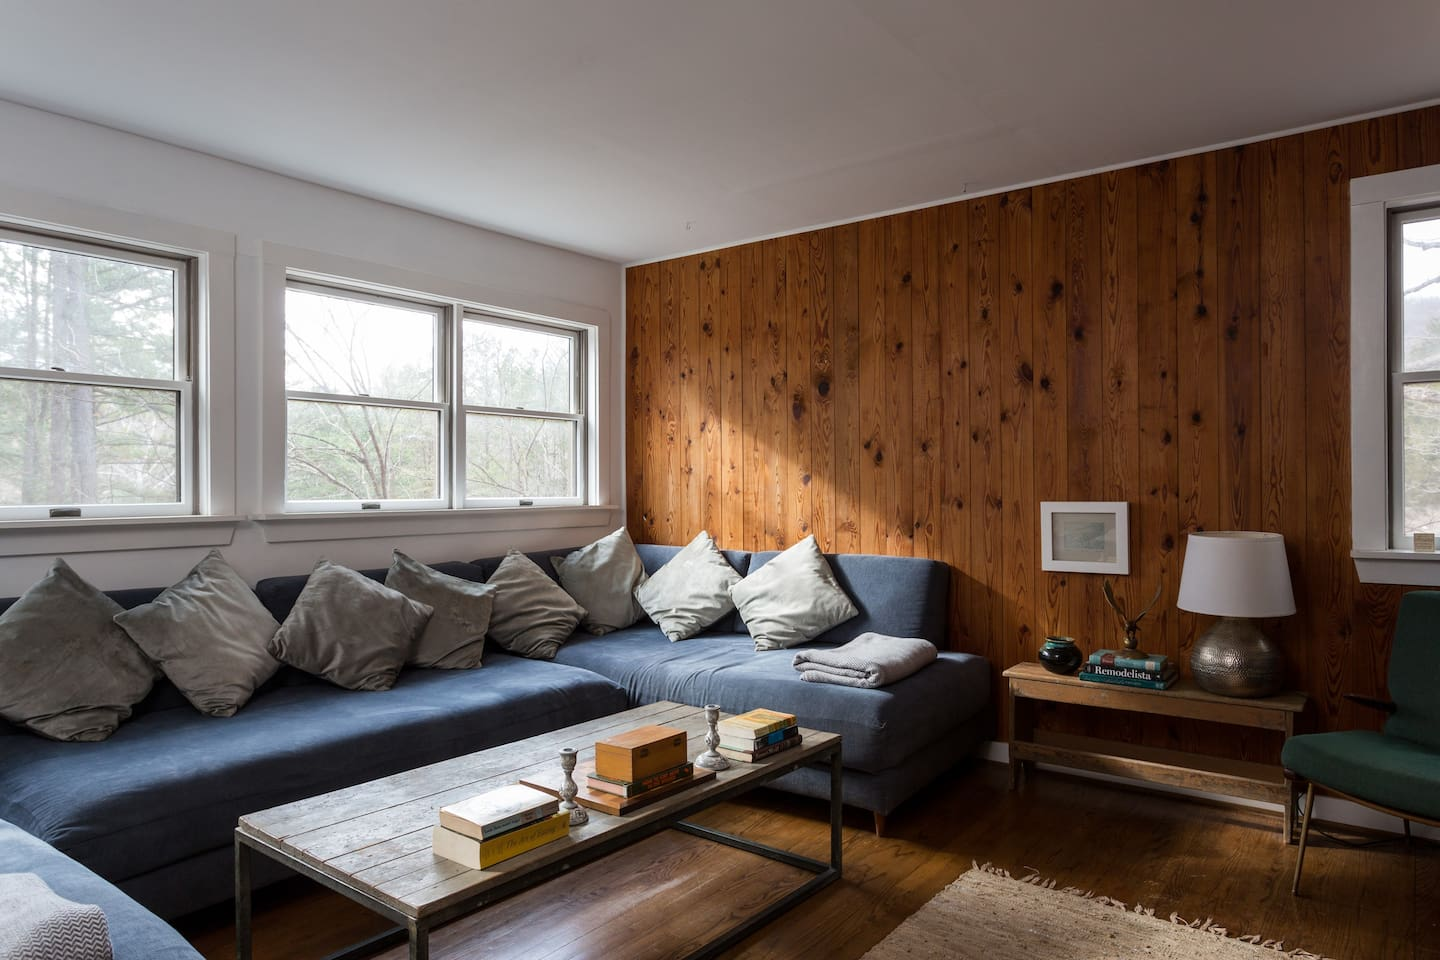 Modern Rooms on Working Farm - Houses for Rent in Free Union ...